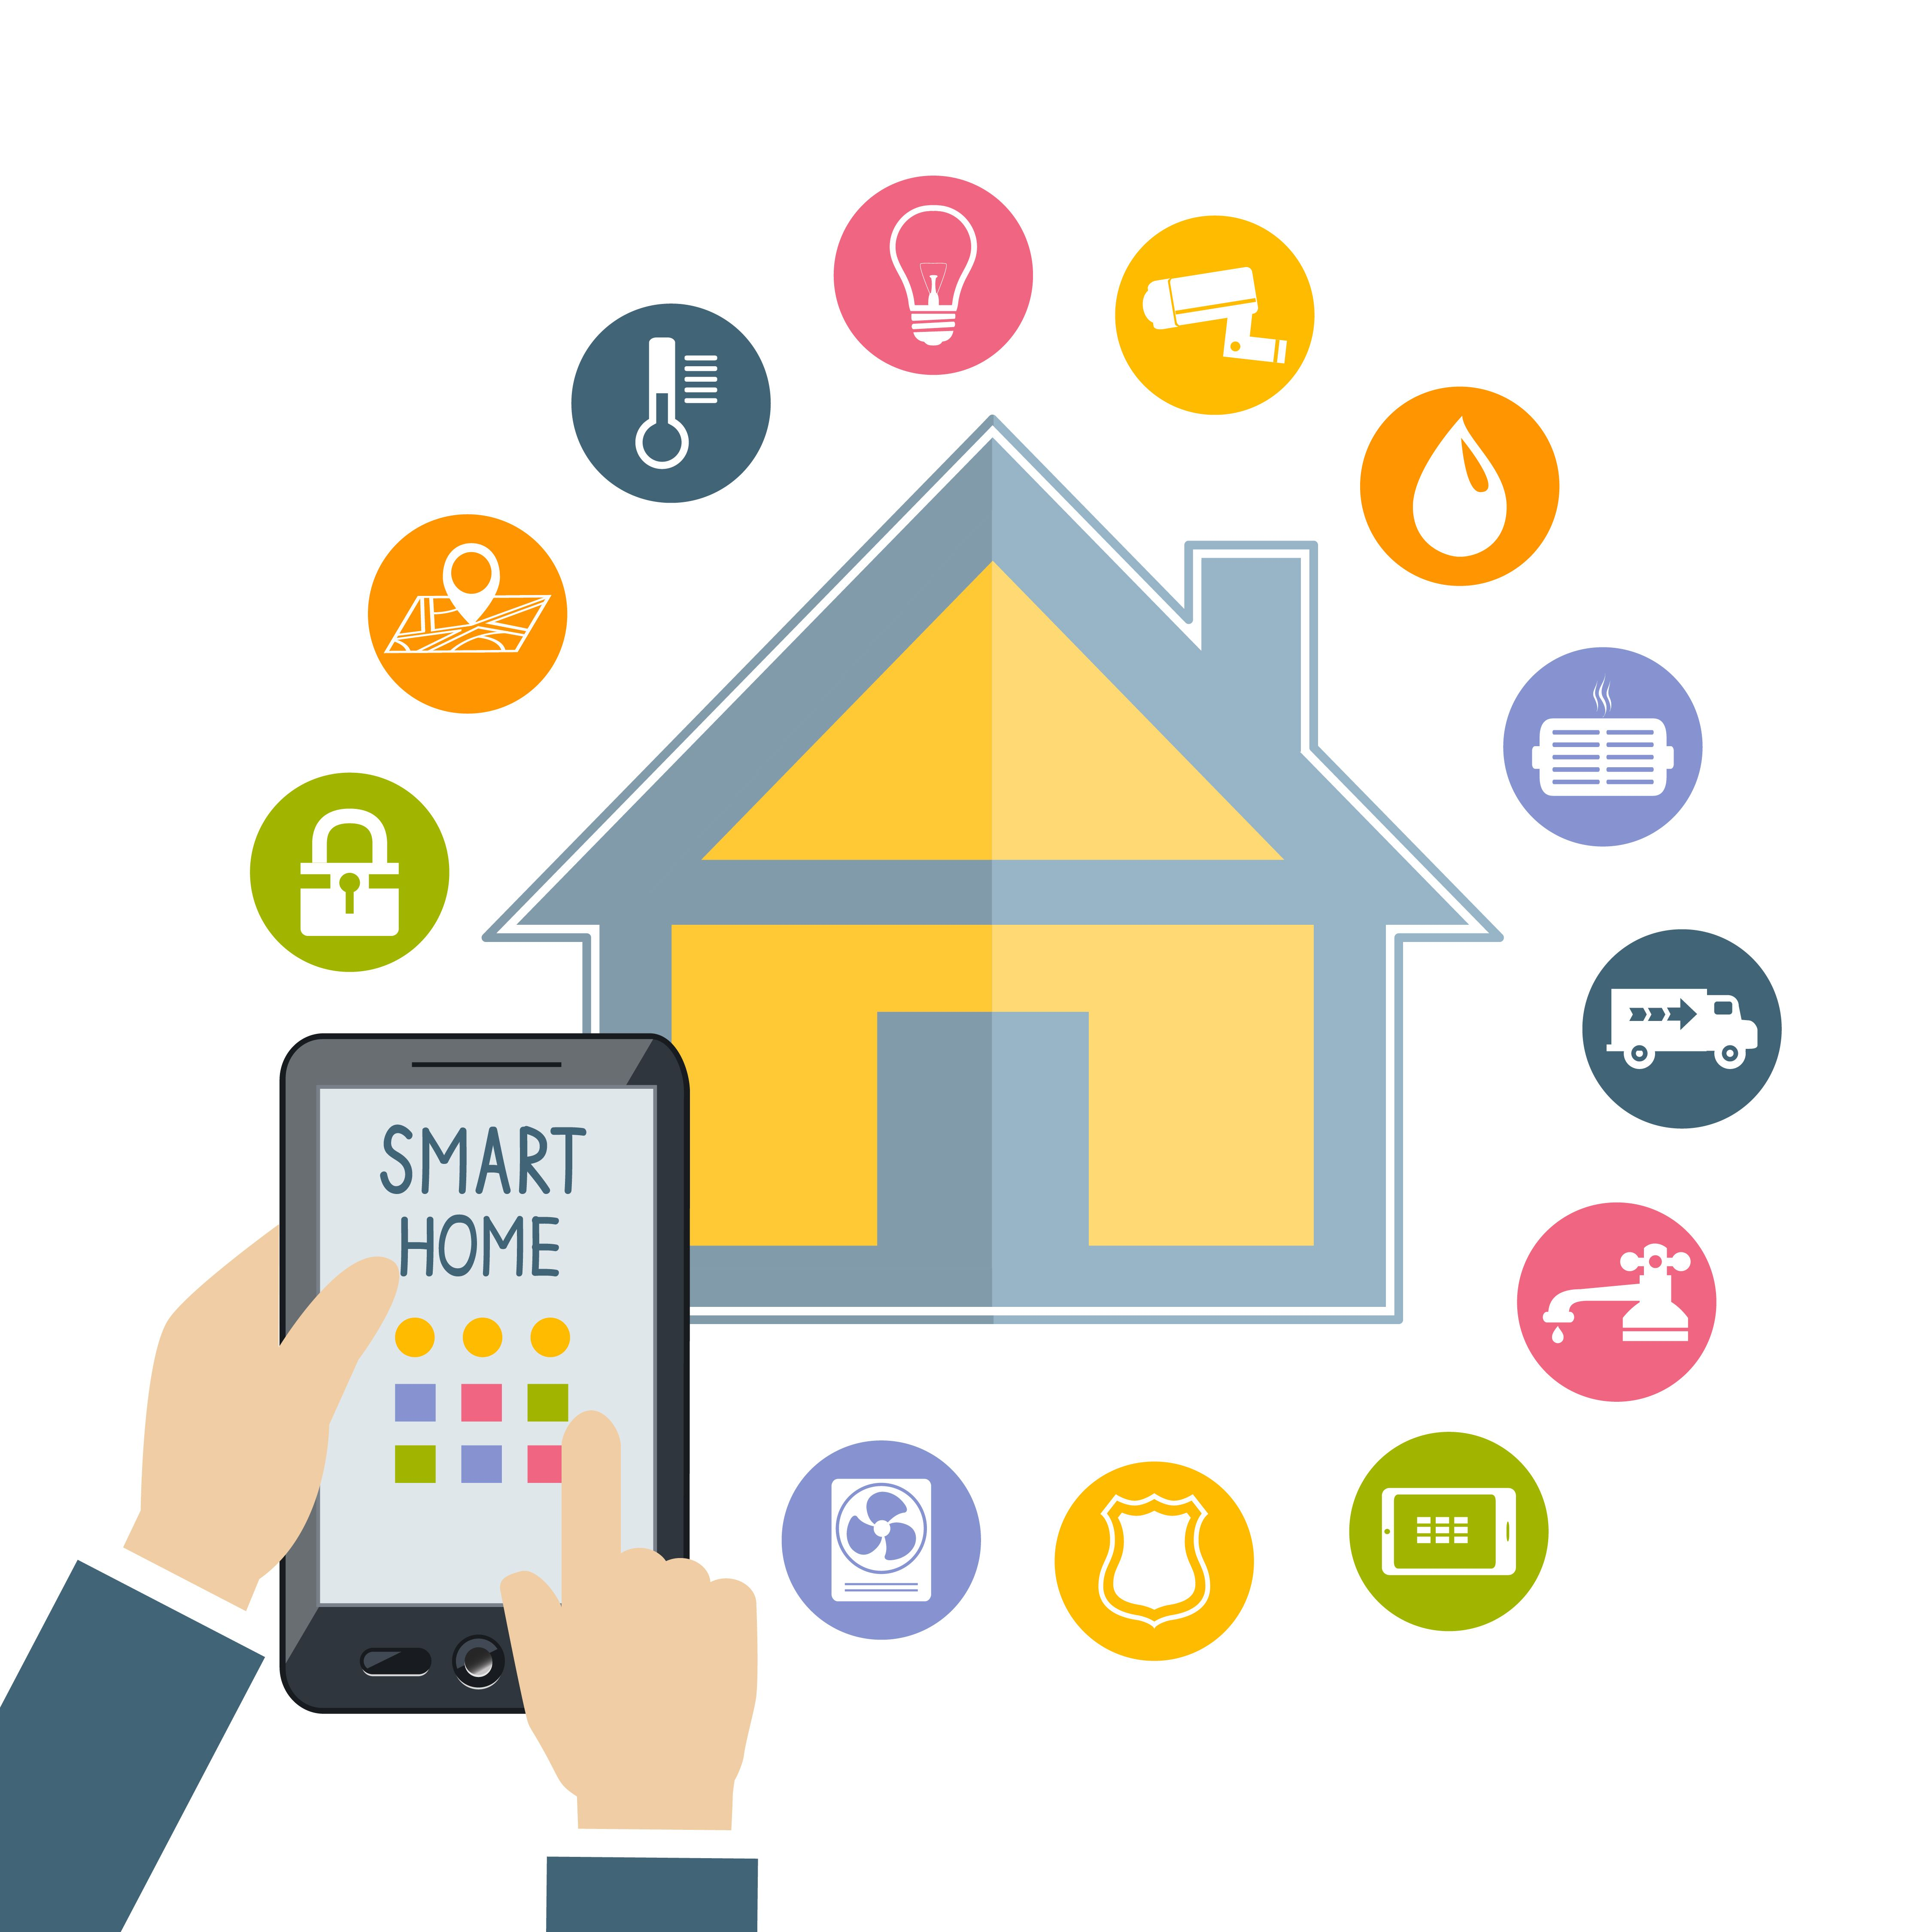 Smart Home Technologies: Home, Technology And Icons